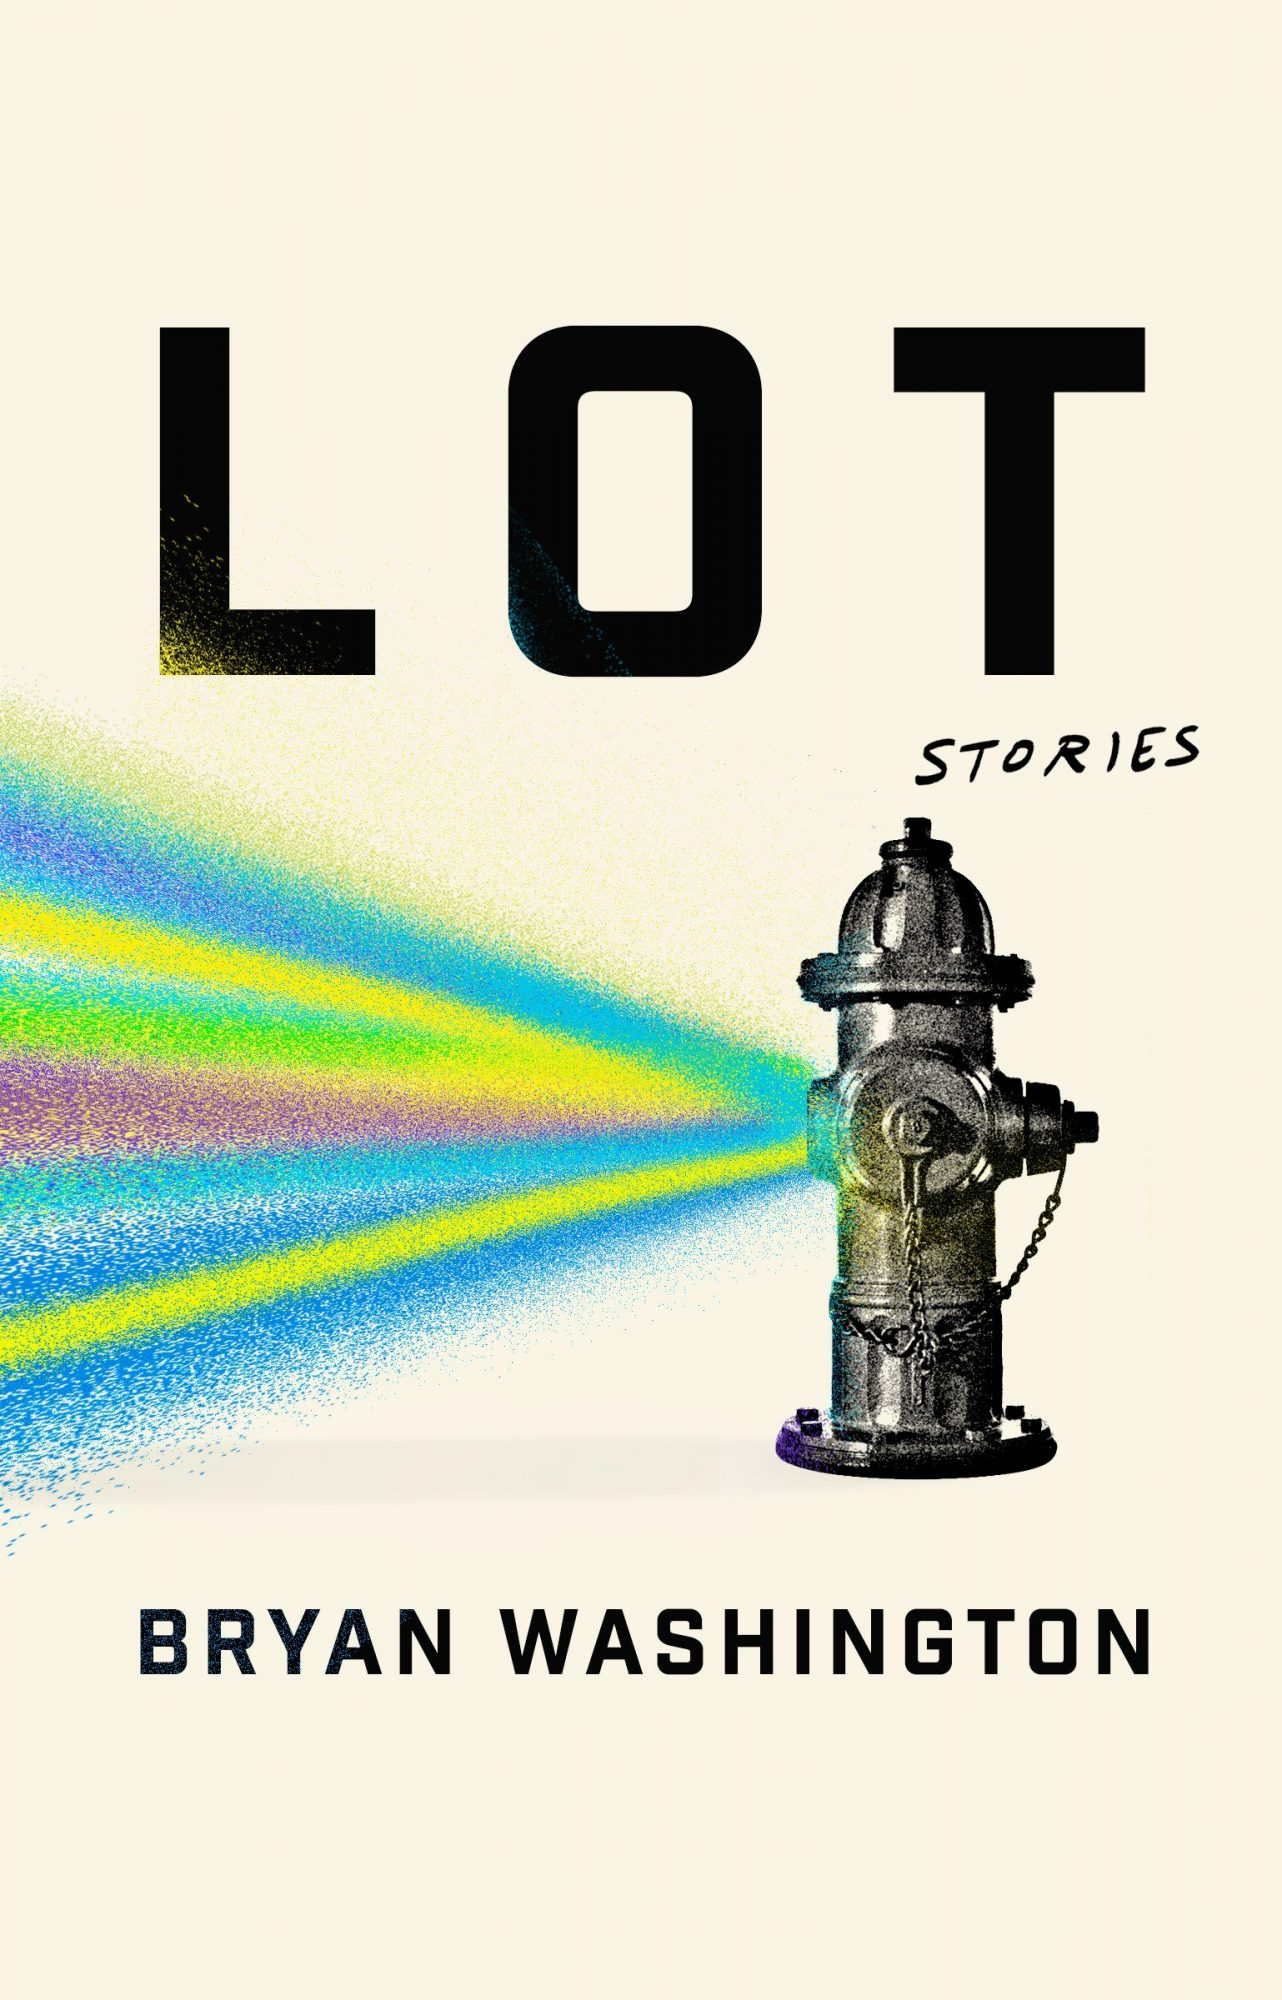 Lot: Stories by Bryan Washington